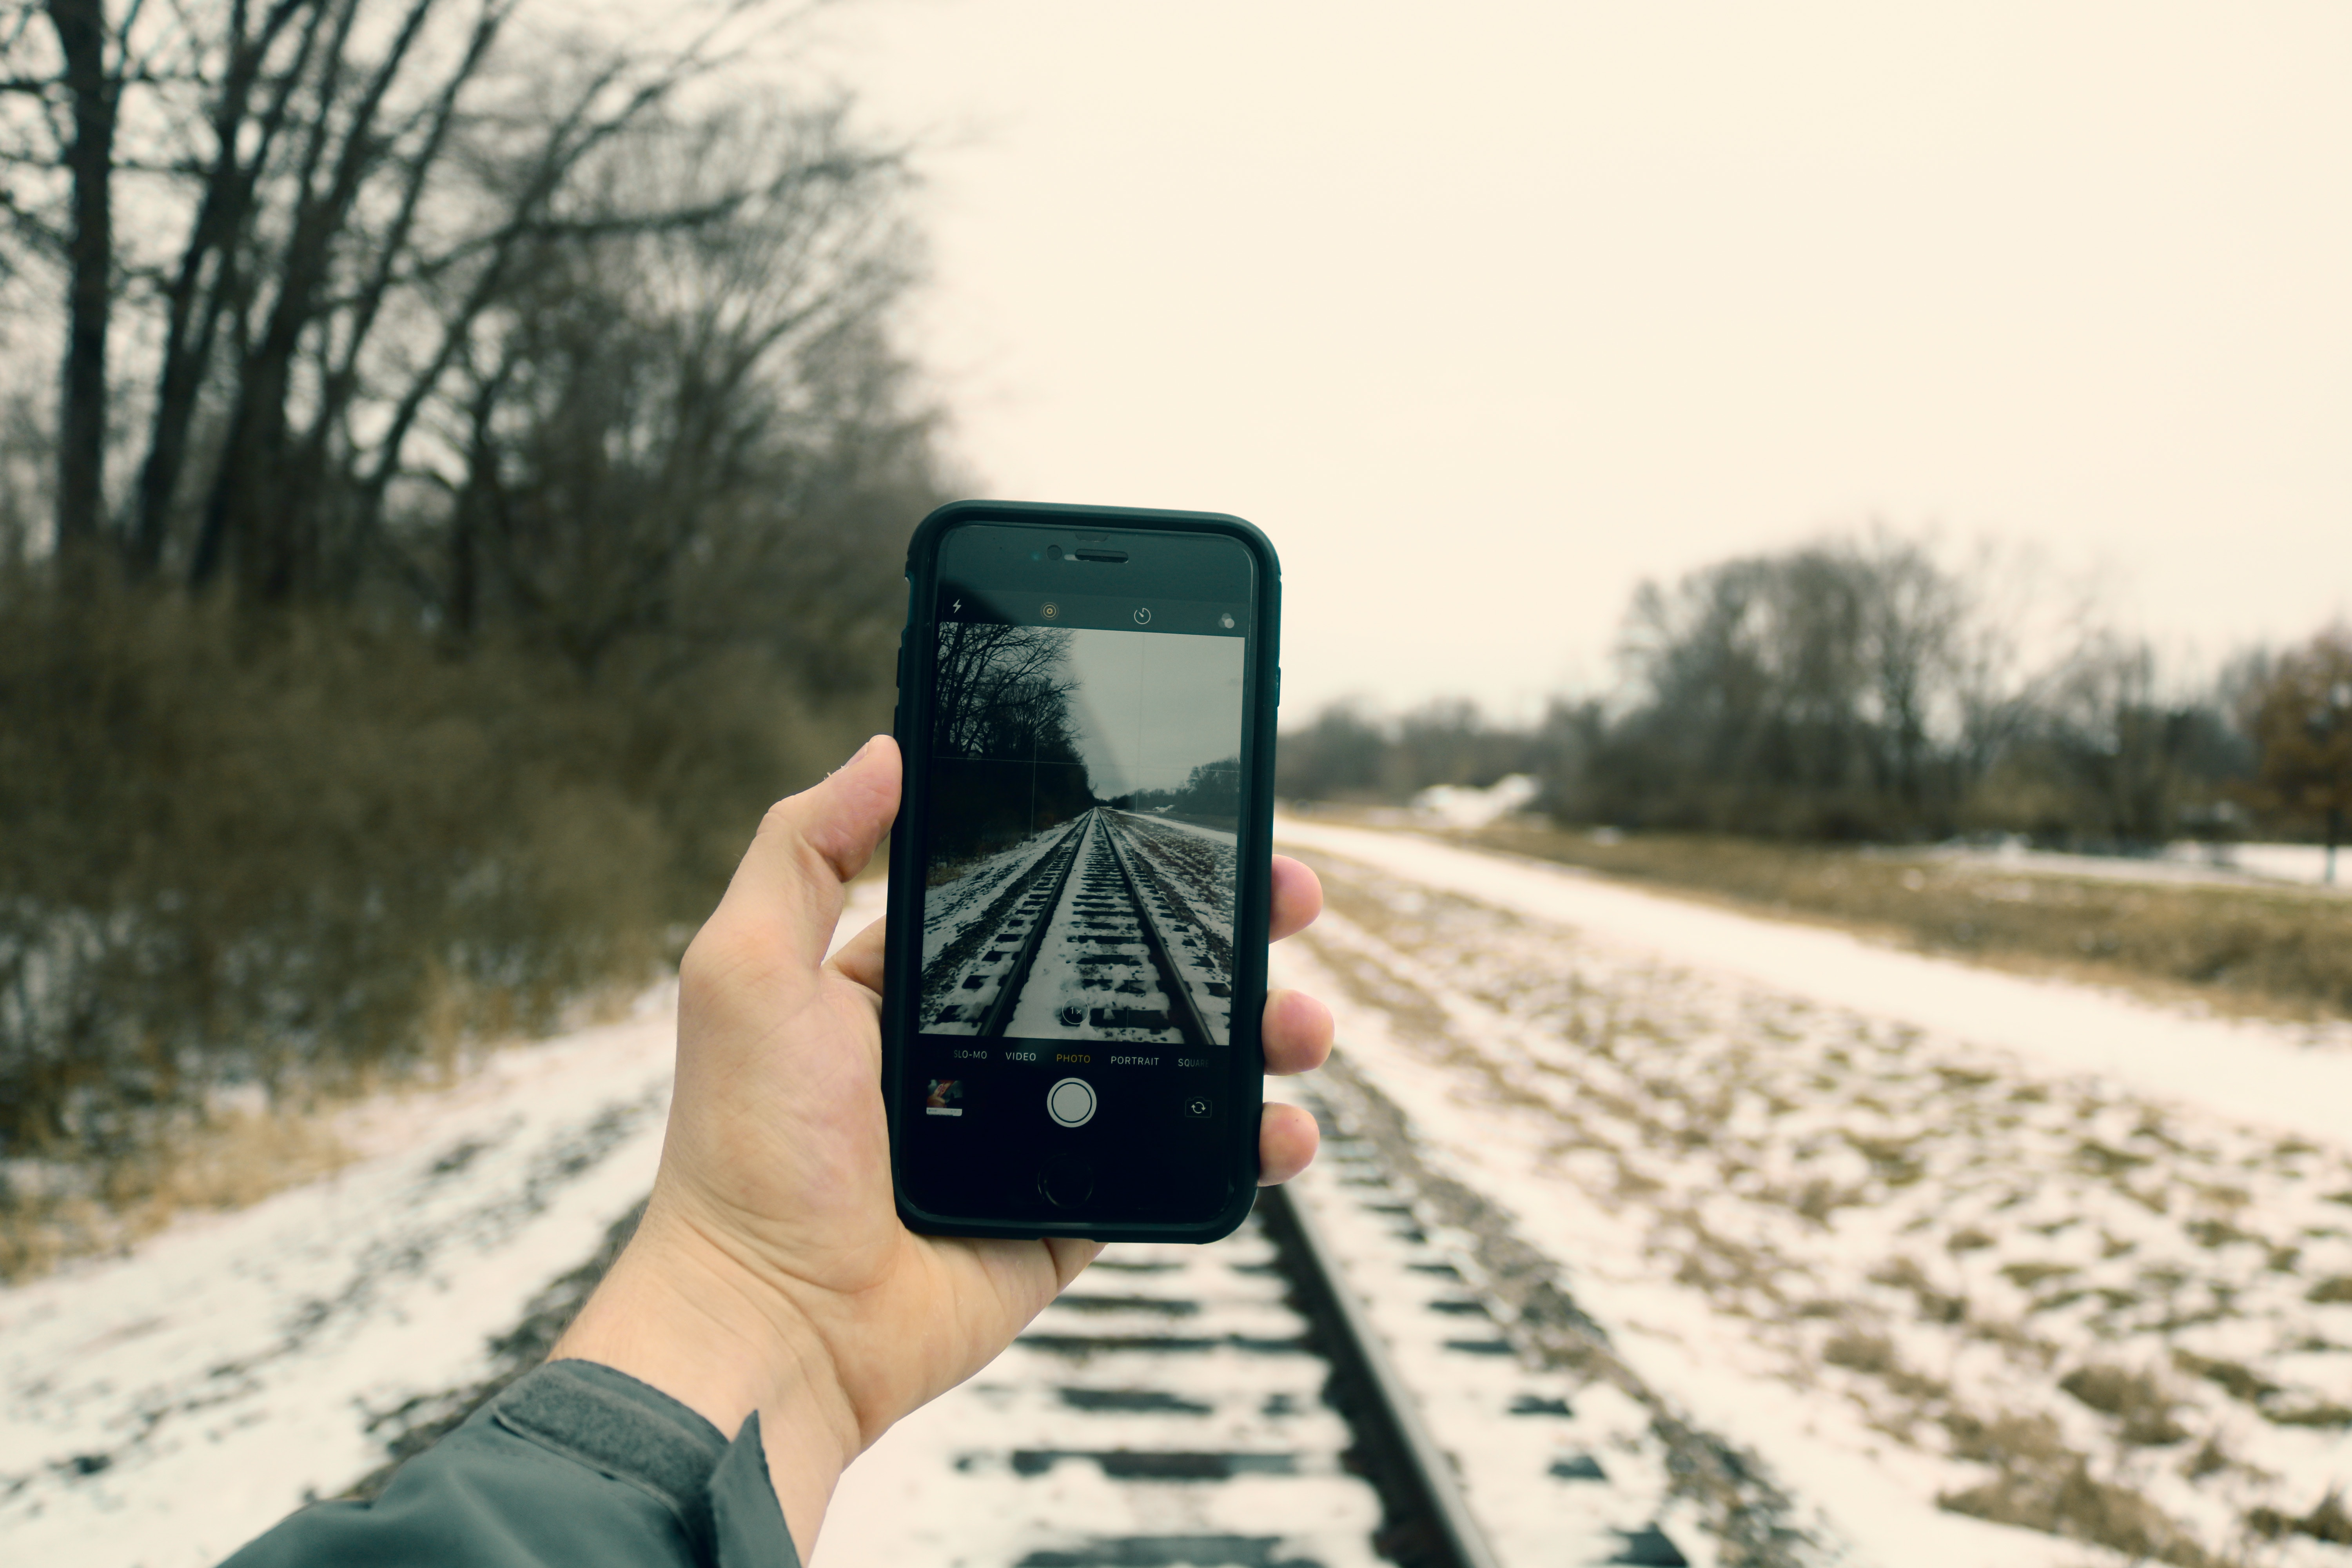 Person Holding Iphone Taking Photo of Train Rails, Blur, Phone, Winter, Trees, HQ Photo